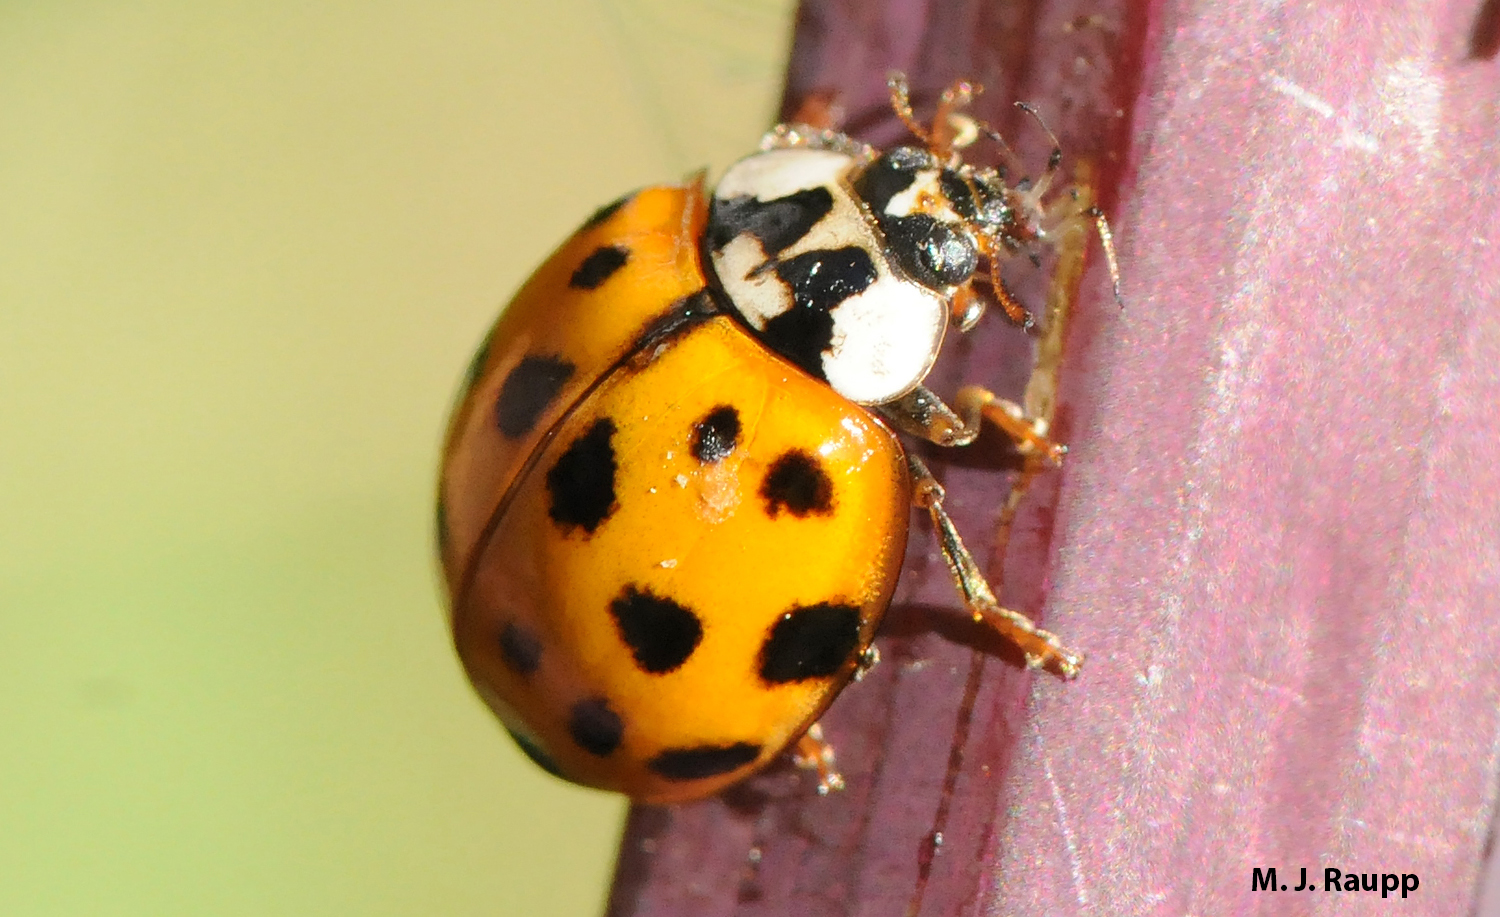 With the remains of the last victim clenched in her jaws, a multicolored Asian lady beetle is ready to find her next meal.